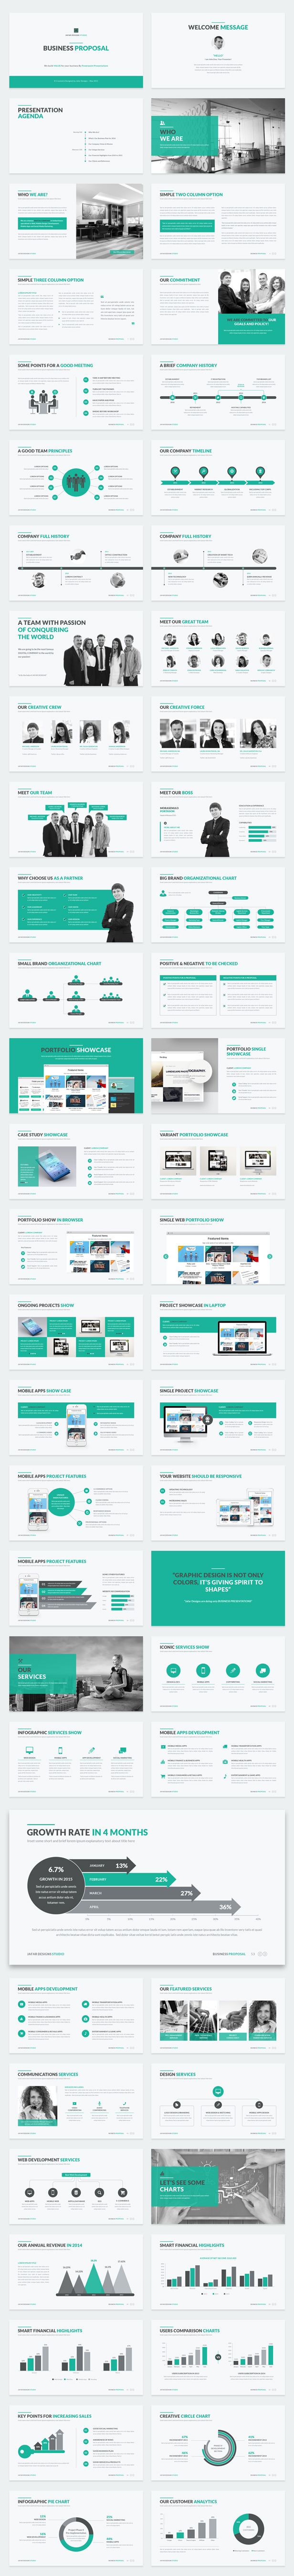 Business Proposal PowerPoint Template - 1